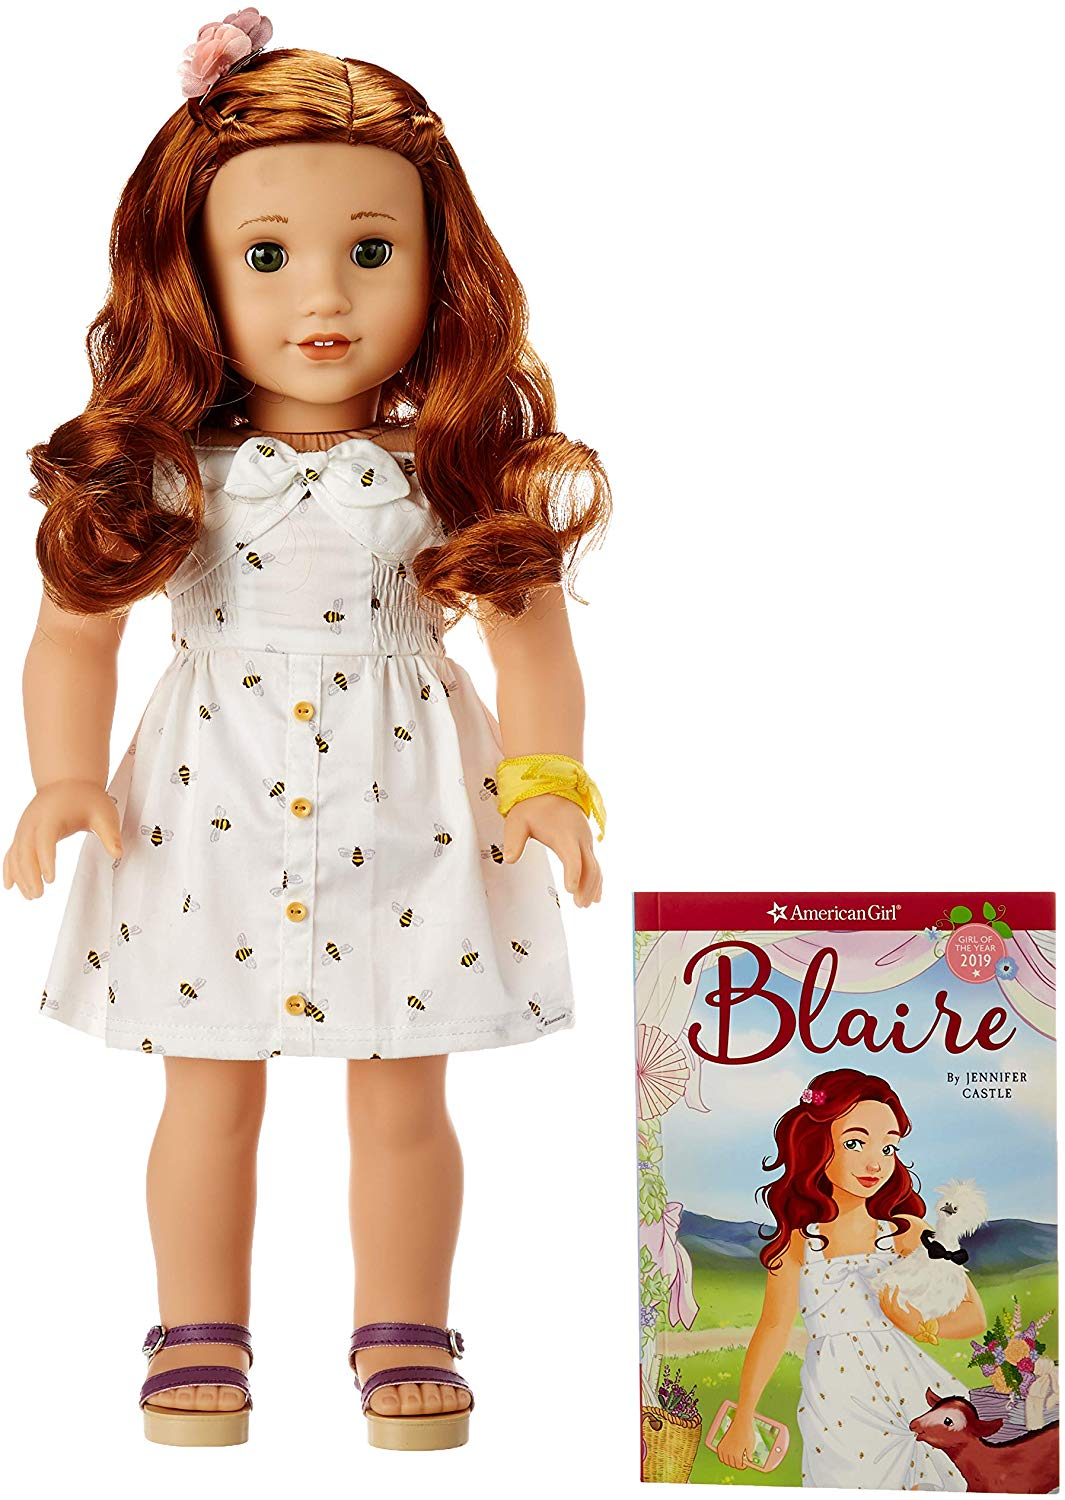 """American Girl Doll Blaire. Meet Blaire, the 2019 Girl of the Year! She's a chef-in-training, party planner, and chicken wrangler at her family's farm and restaurant. The 18"""" Blaire doll has bright green eyes that open and close, and curly red hair. She has a huggable cloth body, and her movable head and limbs are made of smooth vinyl. She comes with the Blaire paperback book, plus her signature outfit:"""